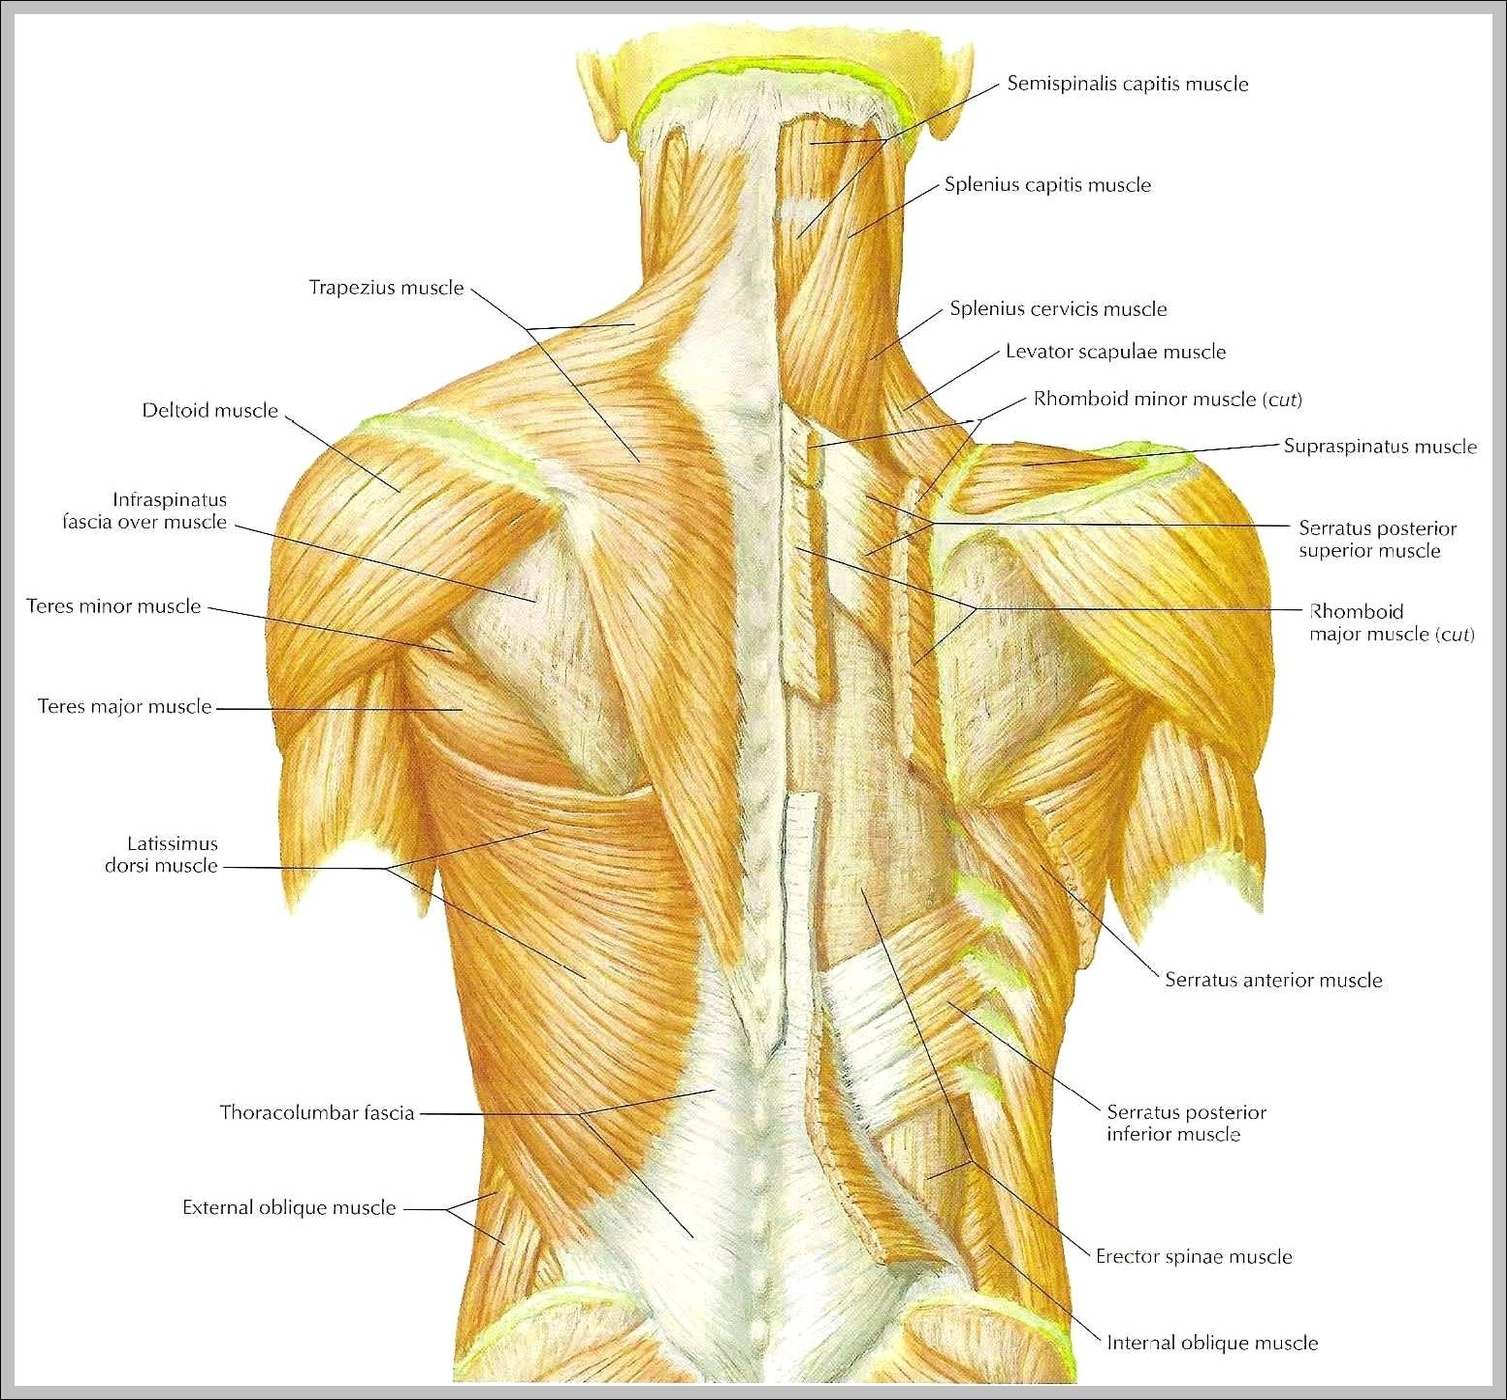 hight resolution of back shoulder muscles diagram back shoulder muscles chart human anatomy diagrams and charts explained this diagram depicts back shoulder muscles with